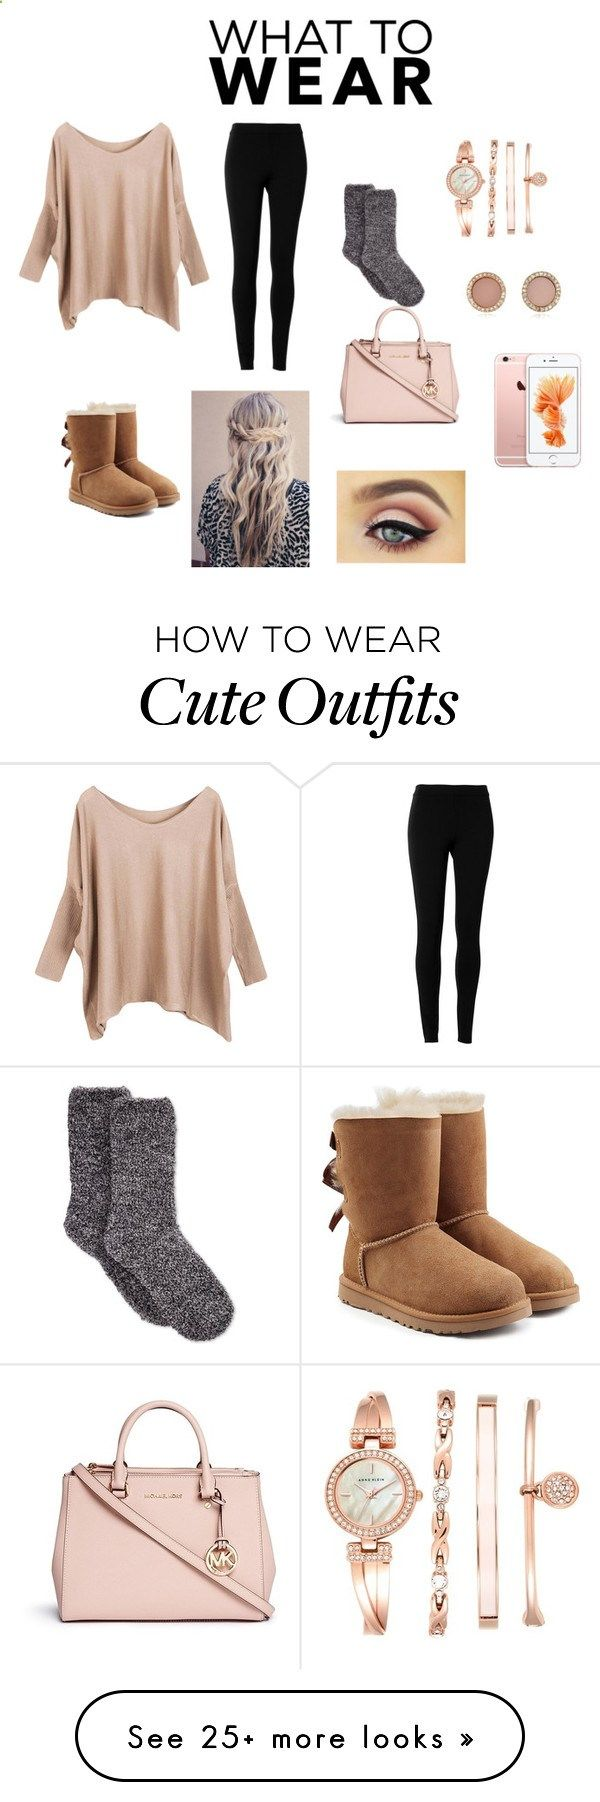 Rosegold Outfit!!! by dancelover102803 on Polyvore featuring Max Studio, UGG Australia, Charter Club, Michael Kors and Anne Klein